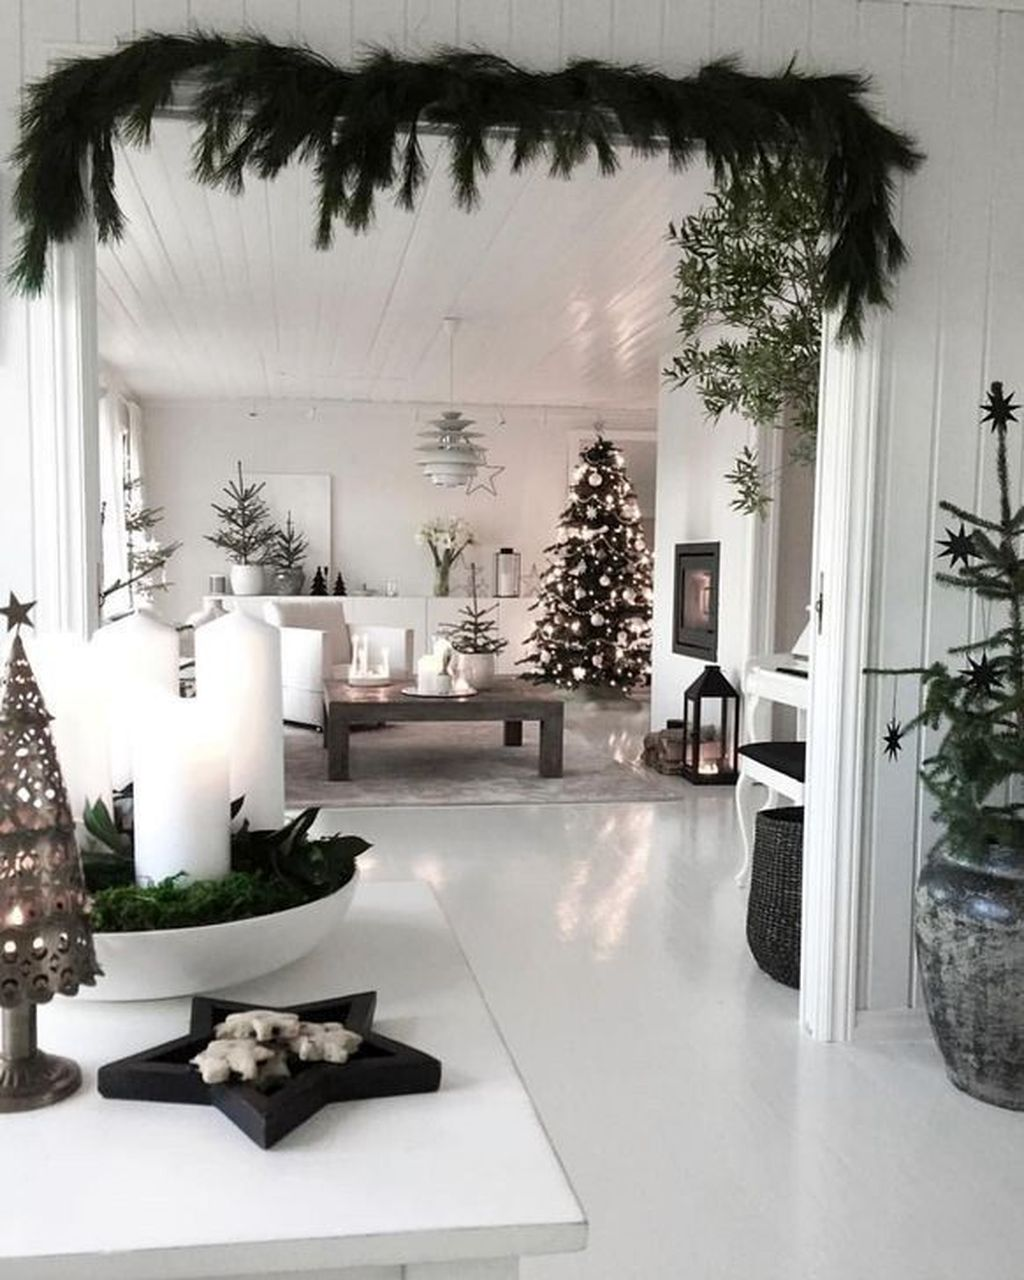 Beautiful Christmas Interior Design Ideas You Never Seen Before 07